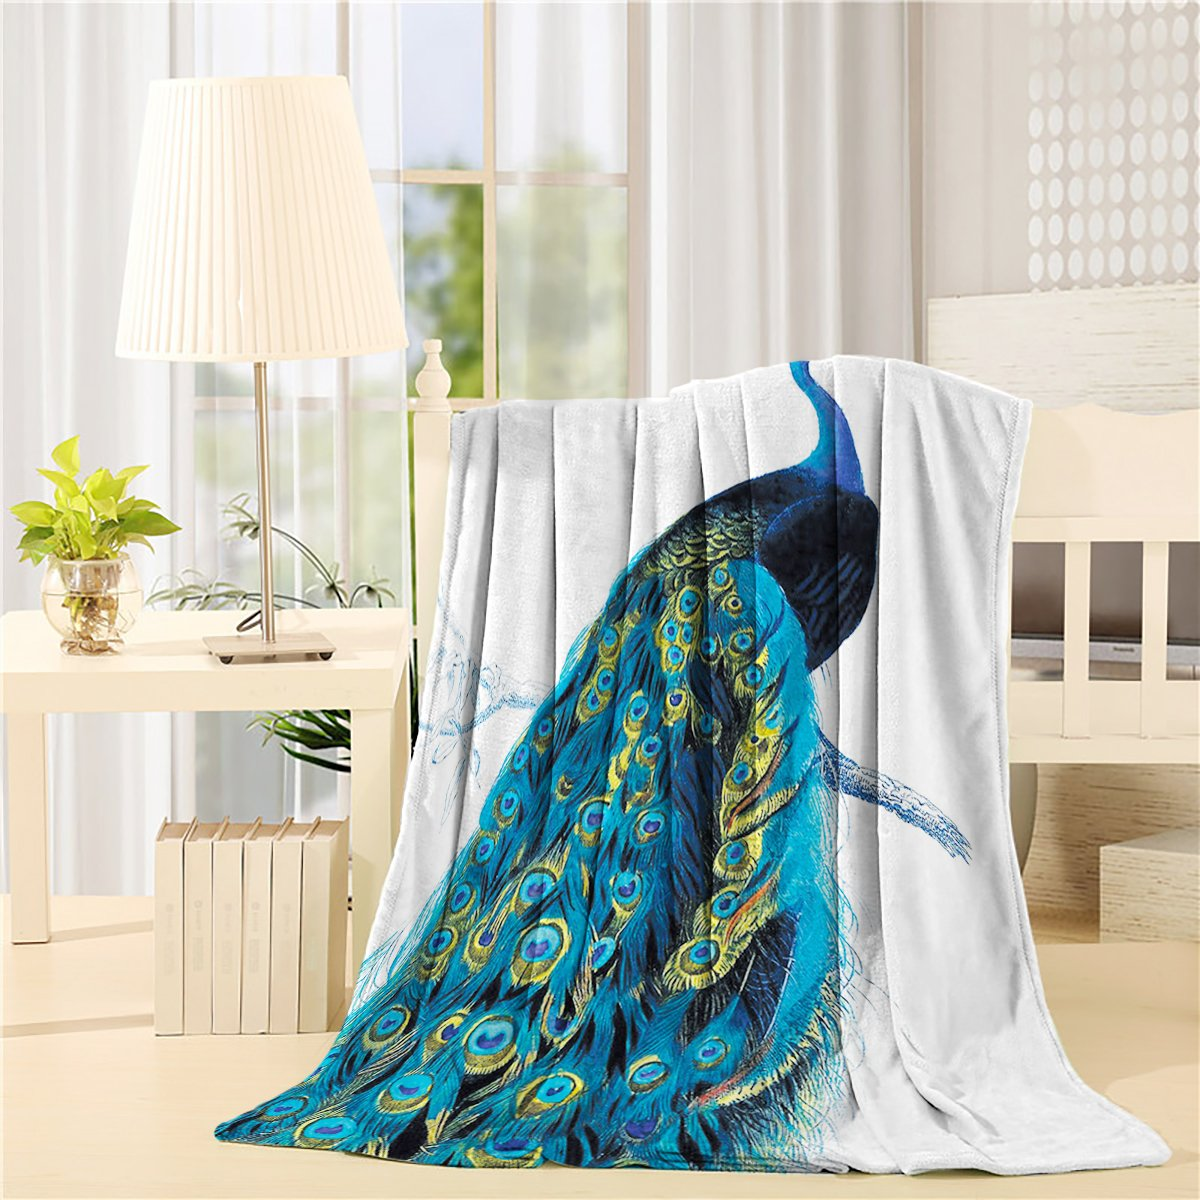 Flannel Fleece Bed Blanket 50 x 60 inch Peacock Throw Blanket Lightweight Cozy Plush Blanket for Bedroom Living Rooms Sofa Couch - Peacock Stand On Branch Wildlife Colorful Tropical Animals